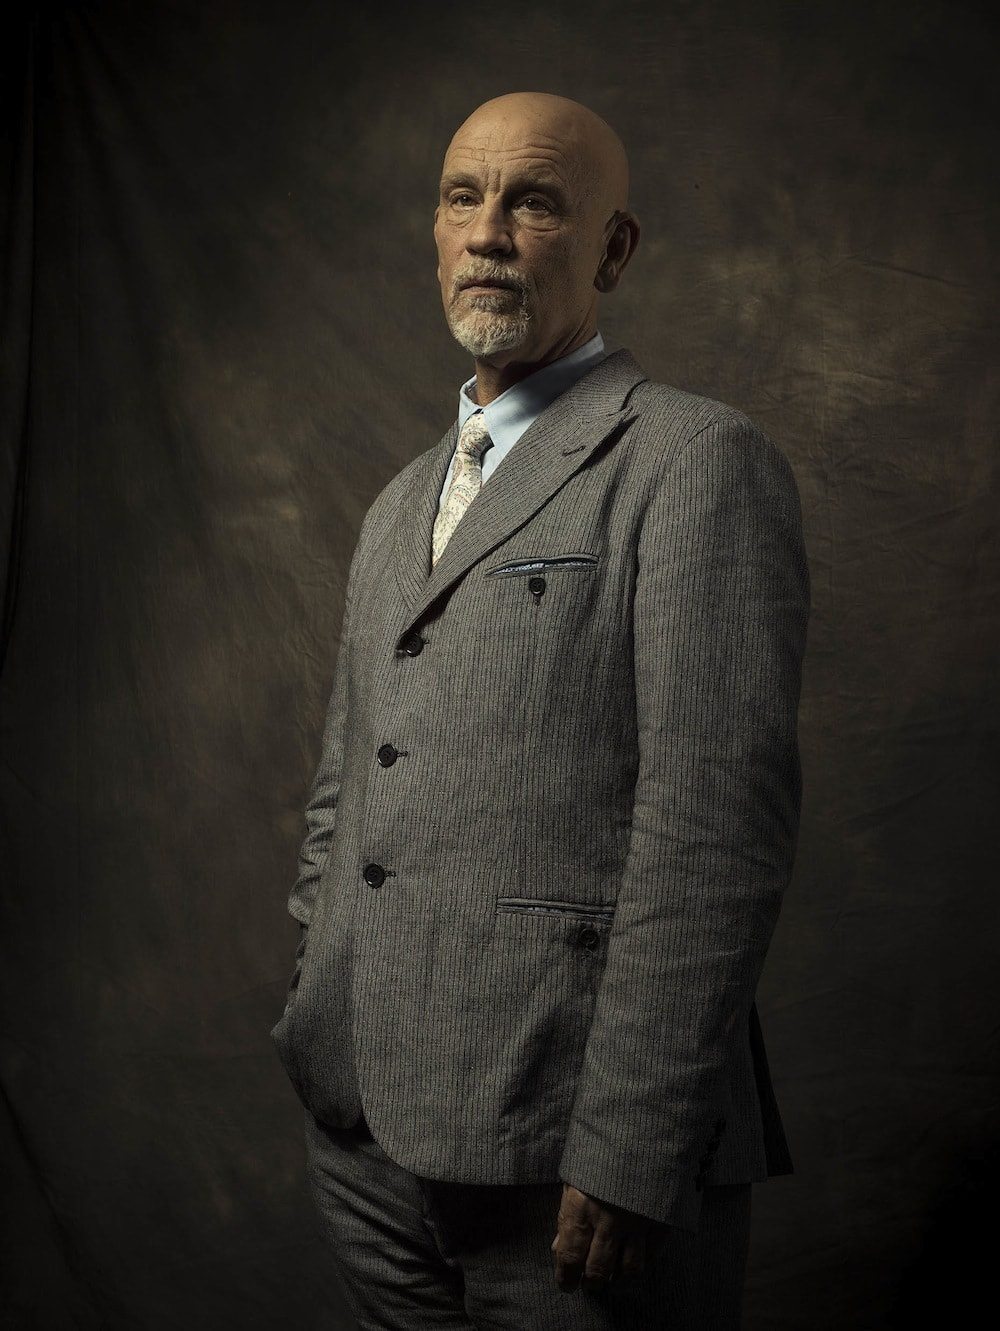 John Malkovich widescreen wallpapers